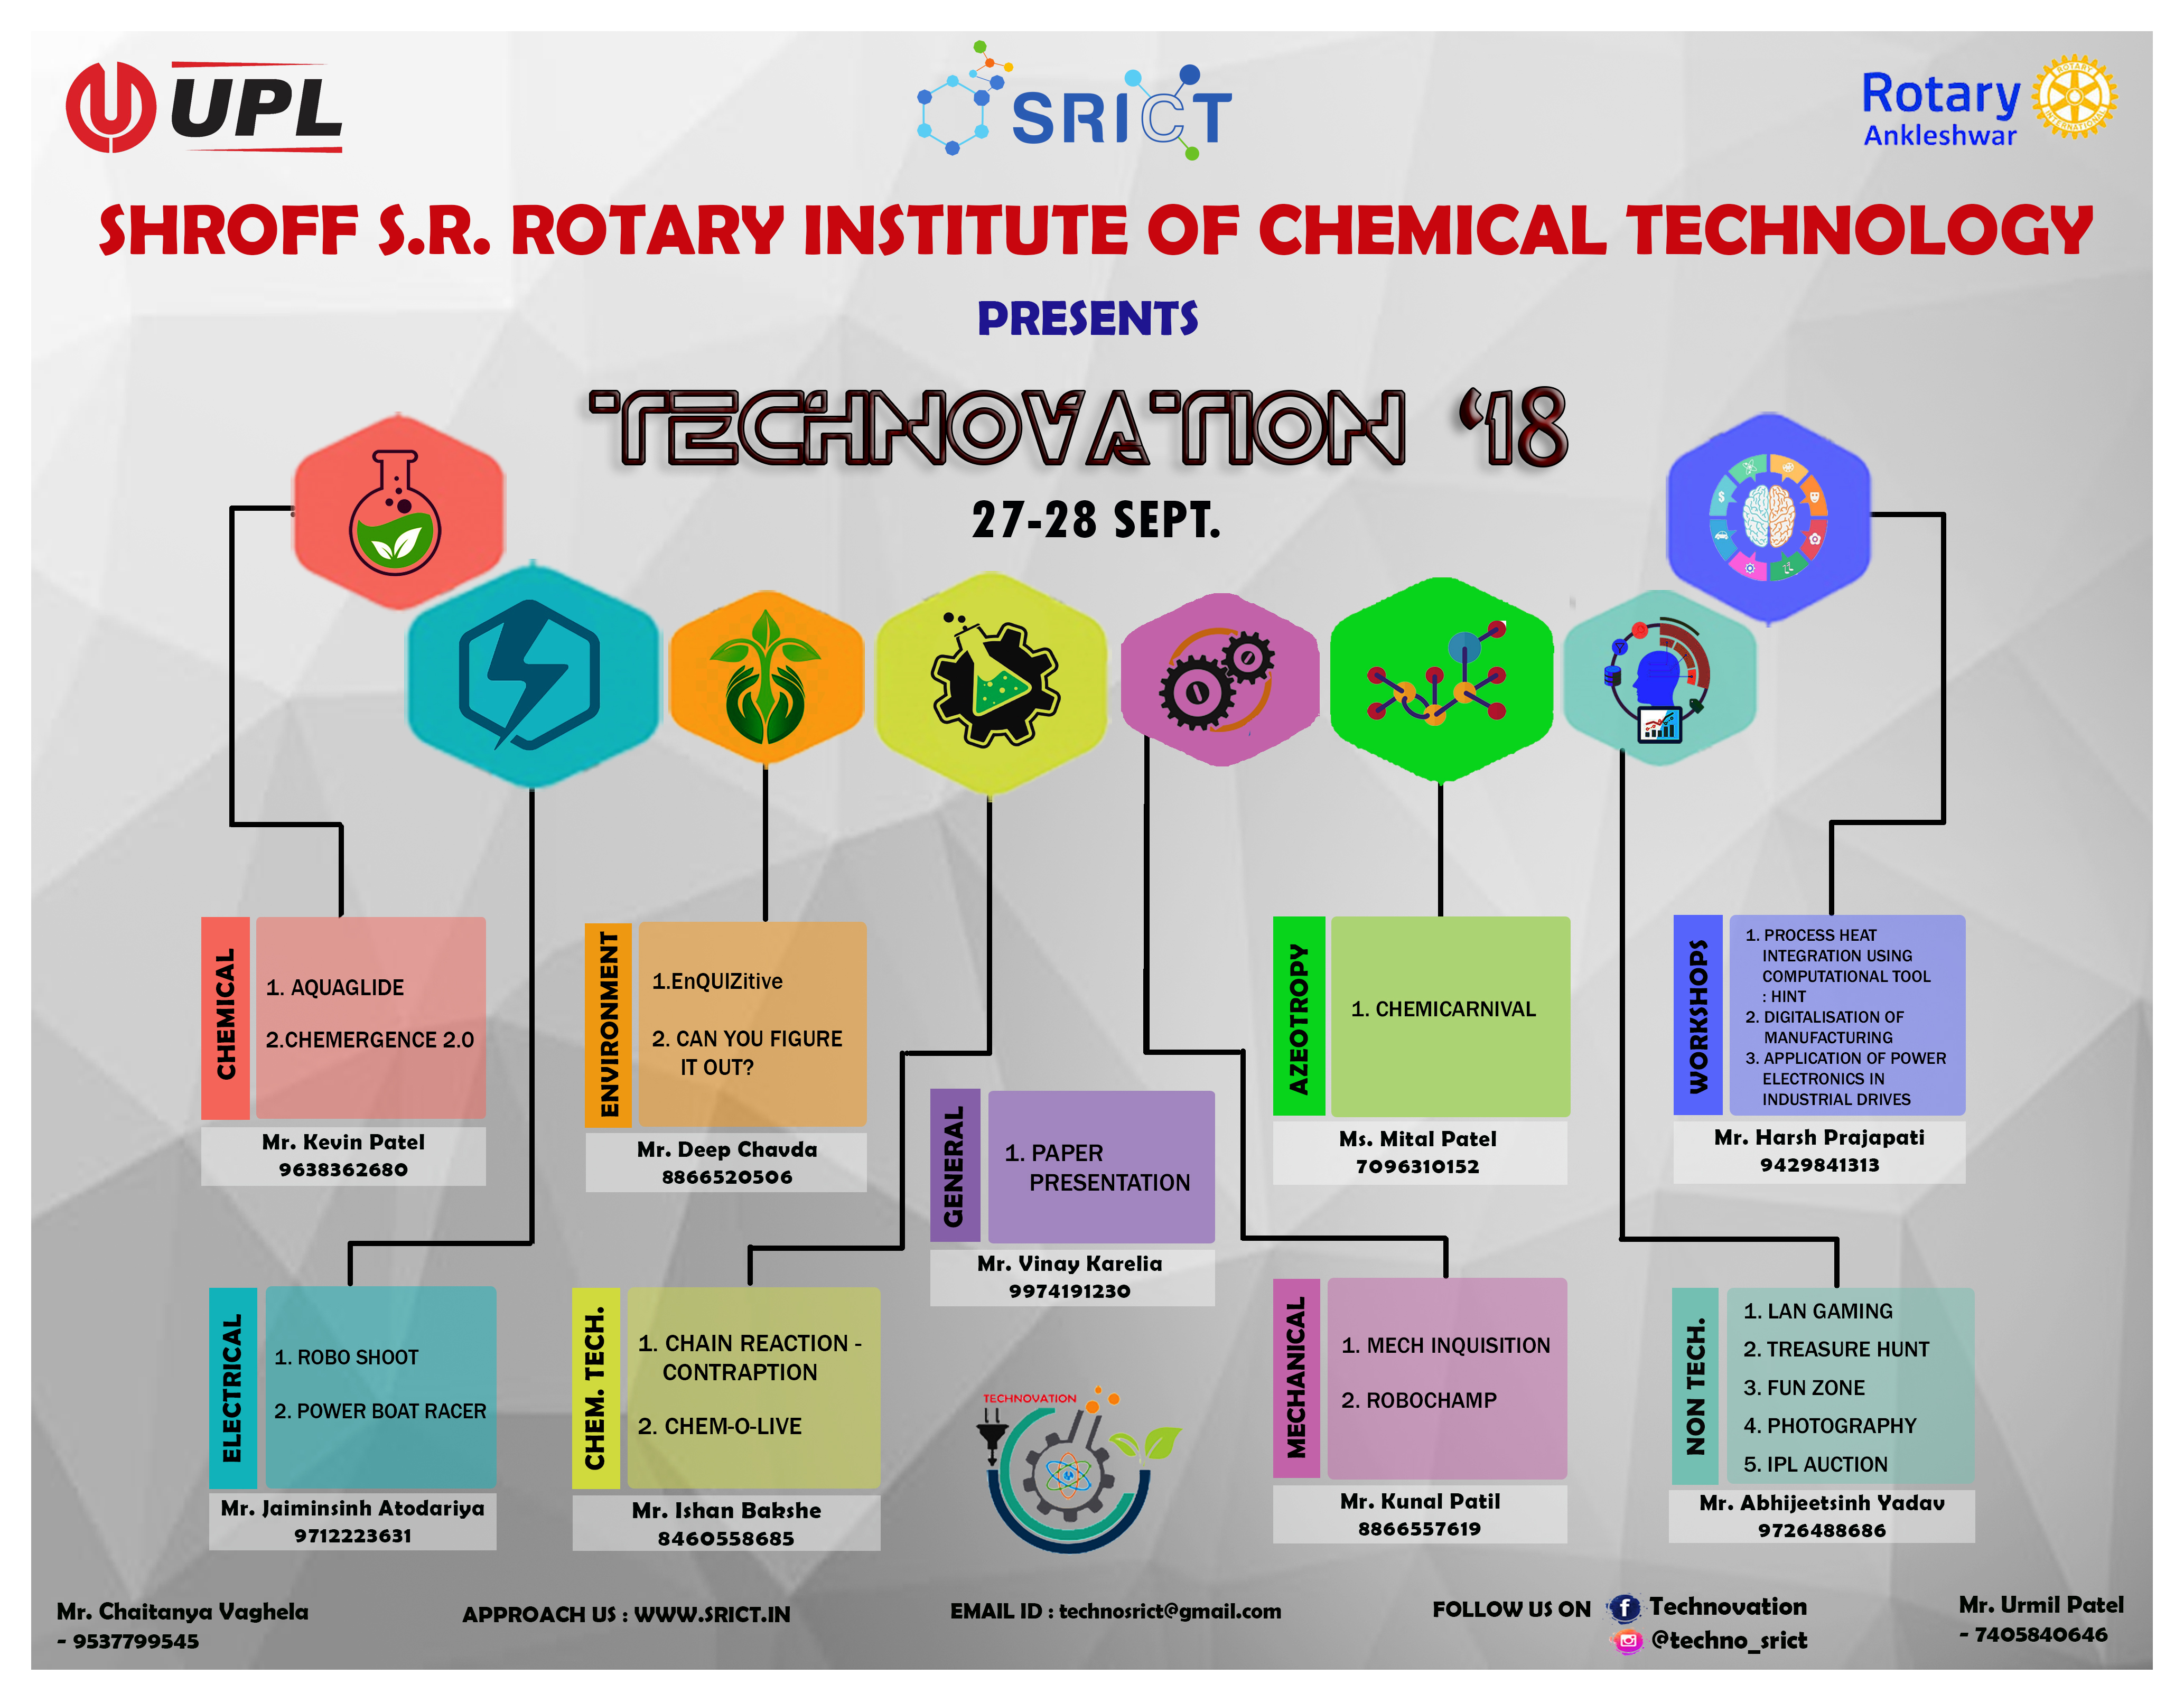 Event Shroff S R Rotary Institute Of Chemical Technology